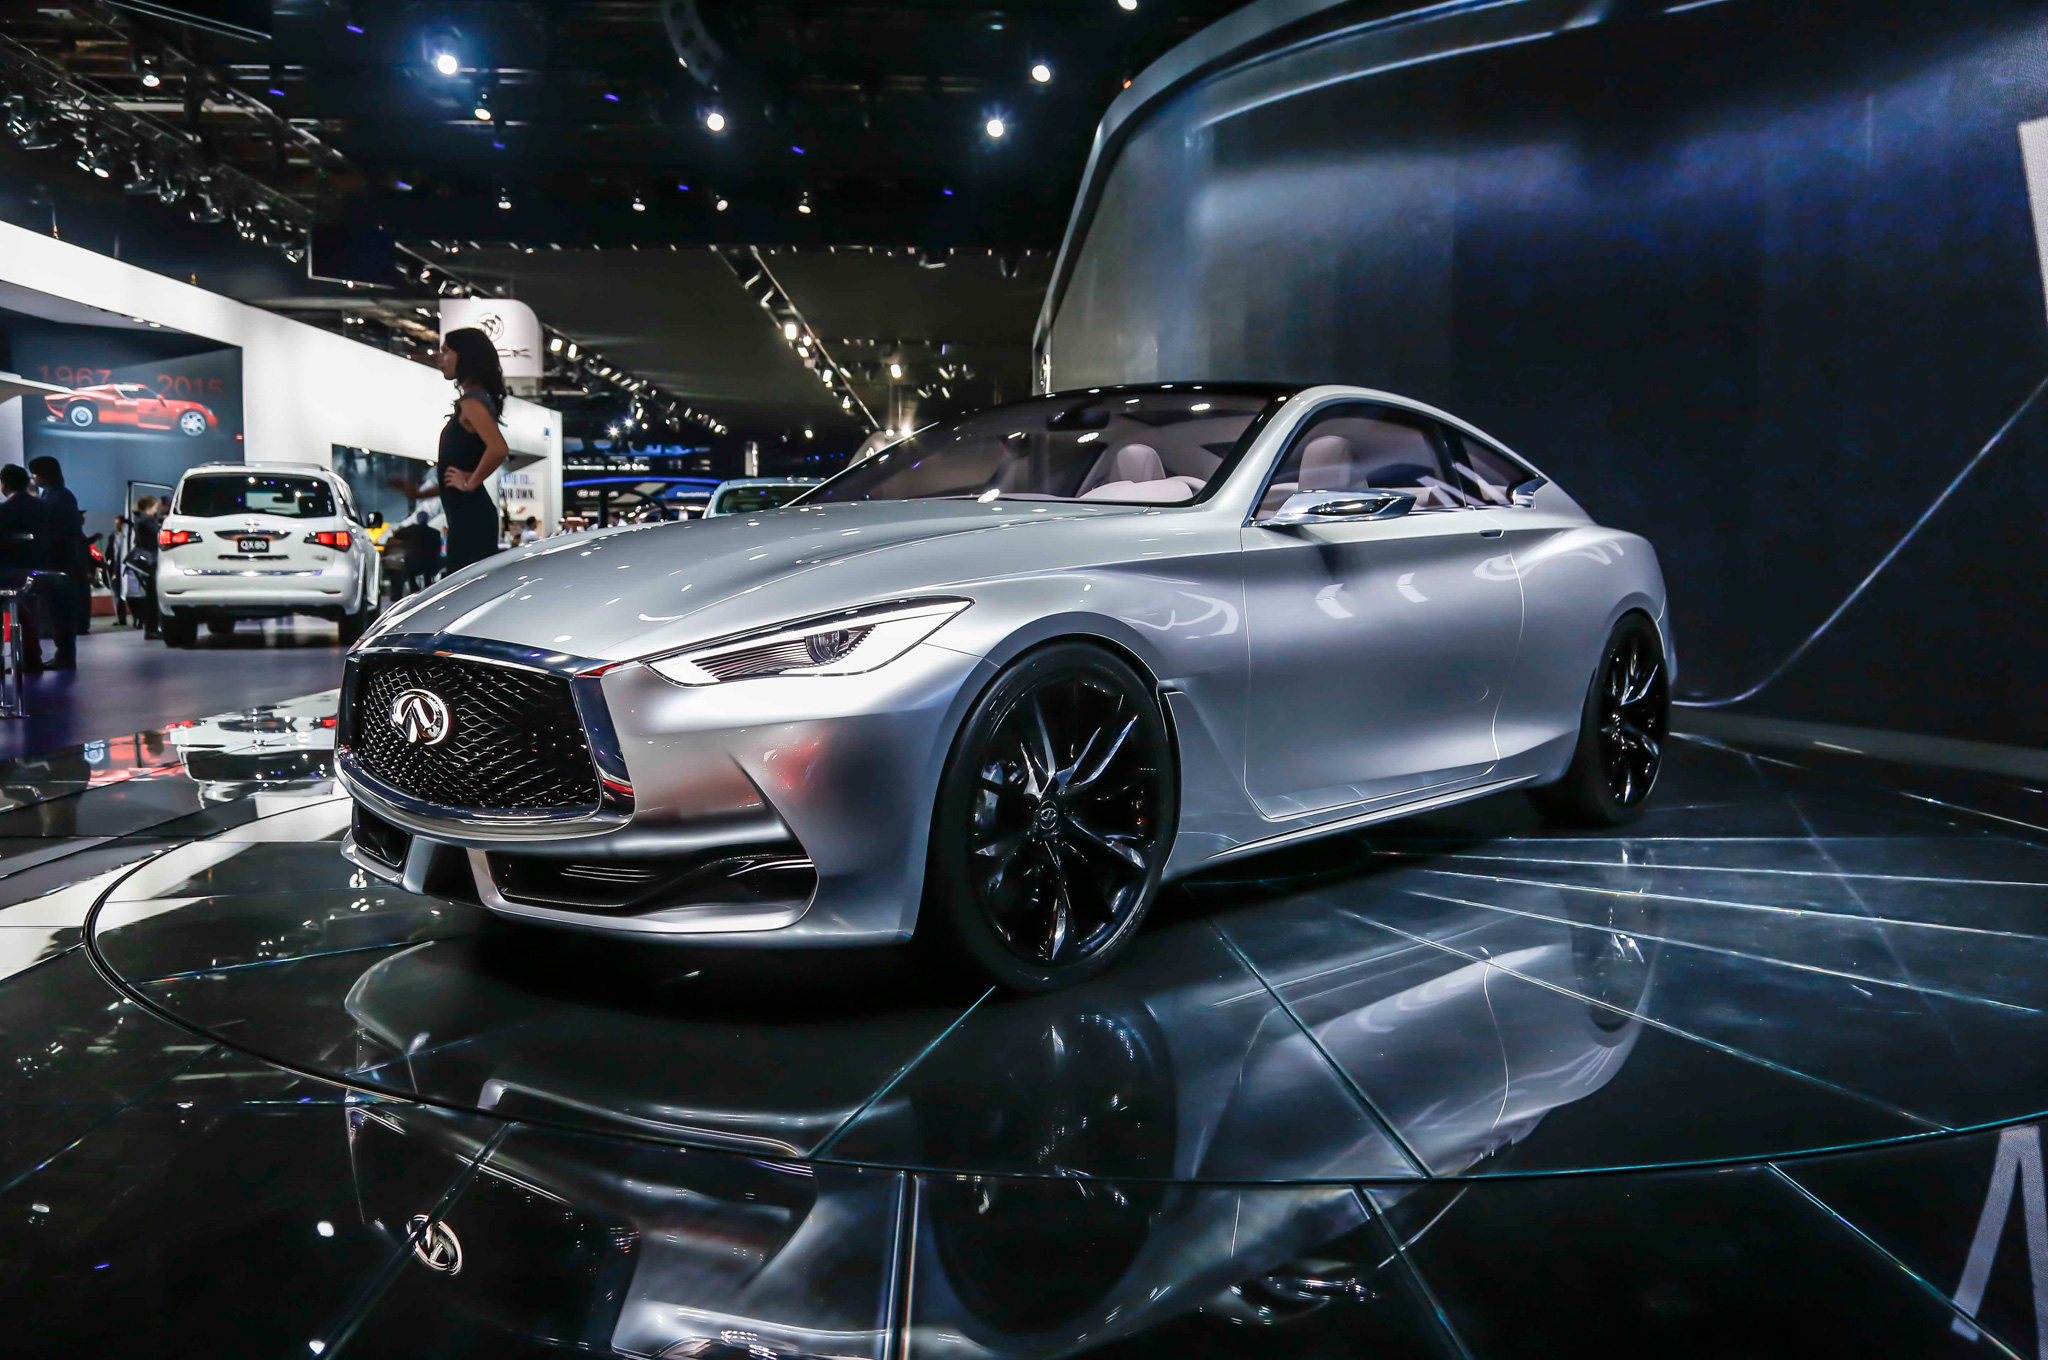 Readers' Choice: Most Popular 2015 Detroit Auto Show Cars